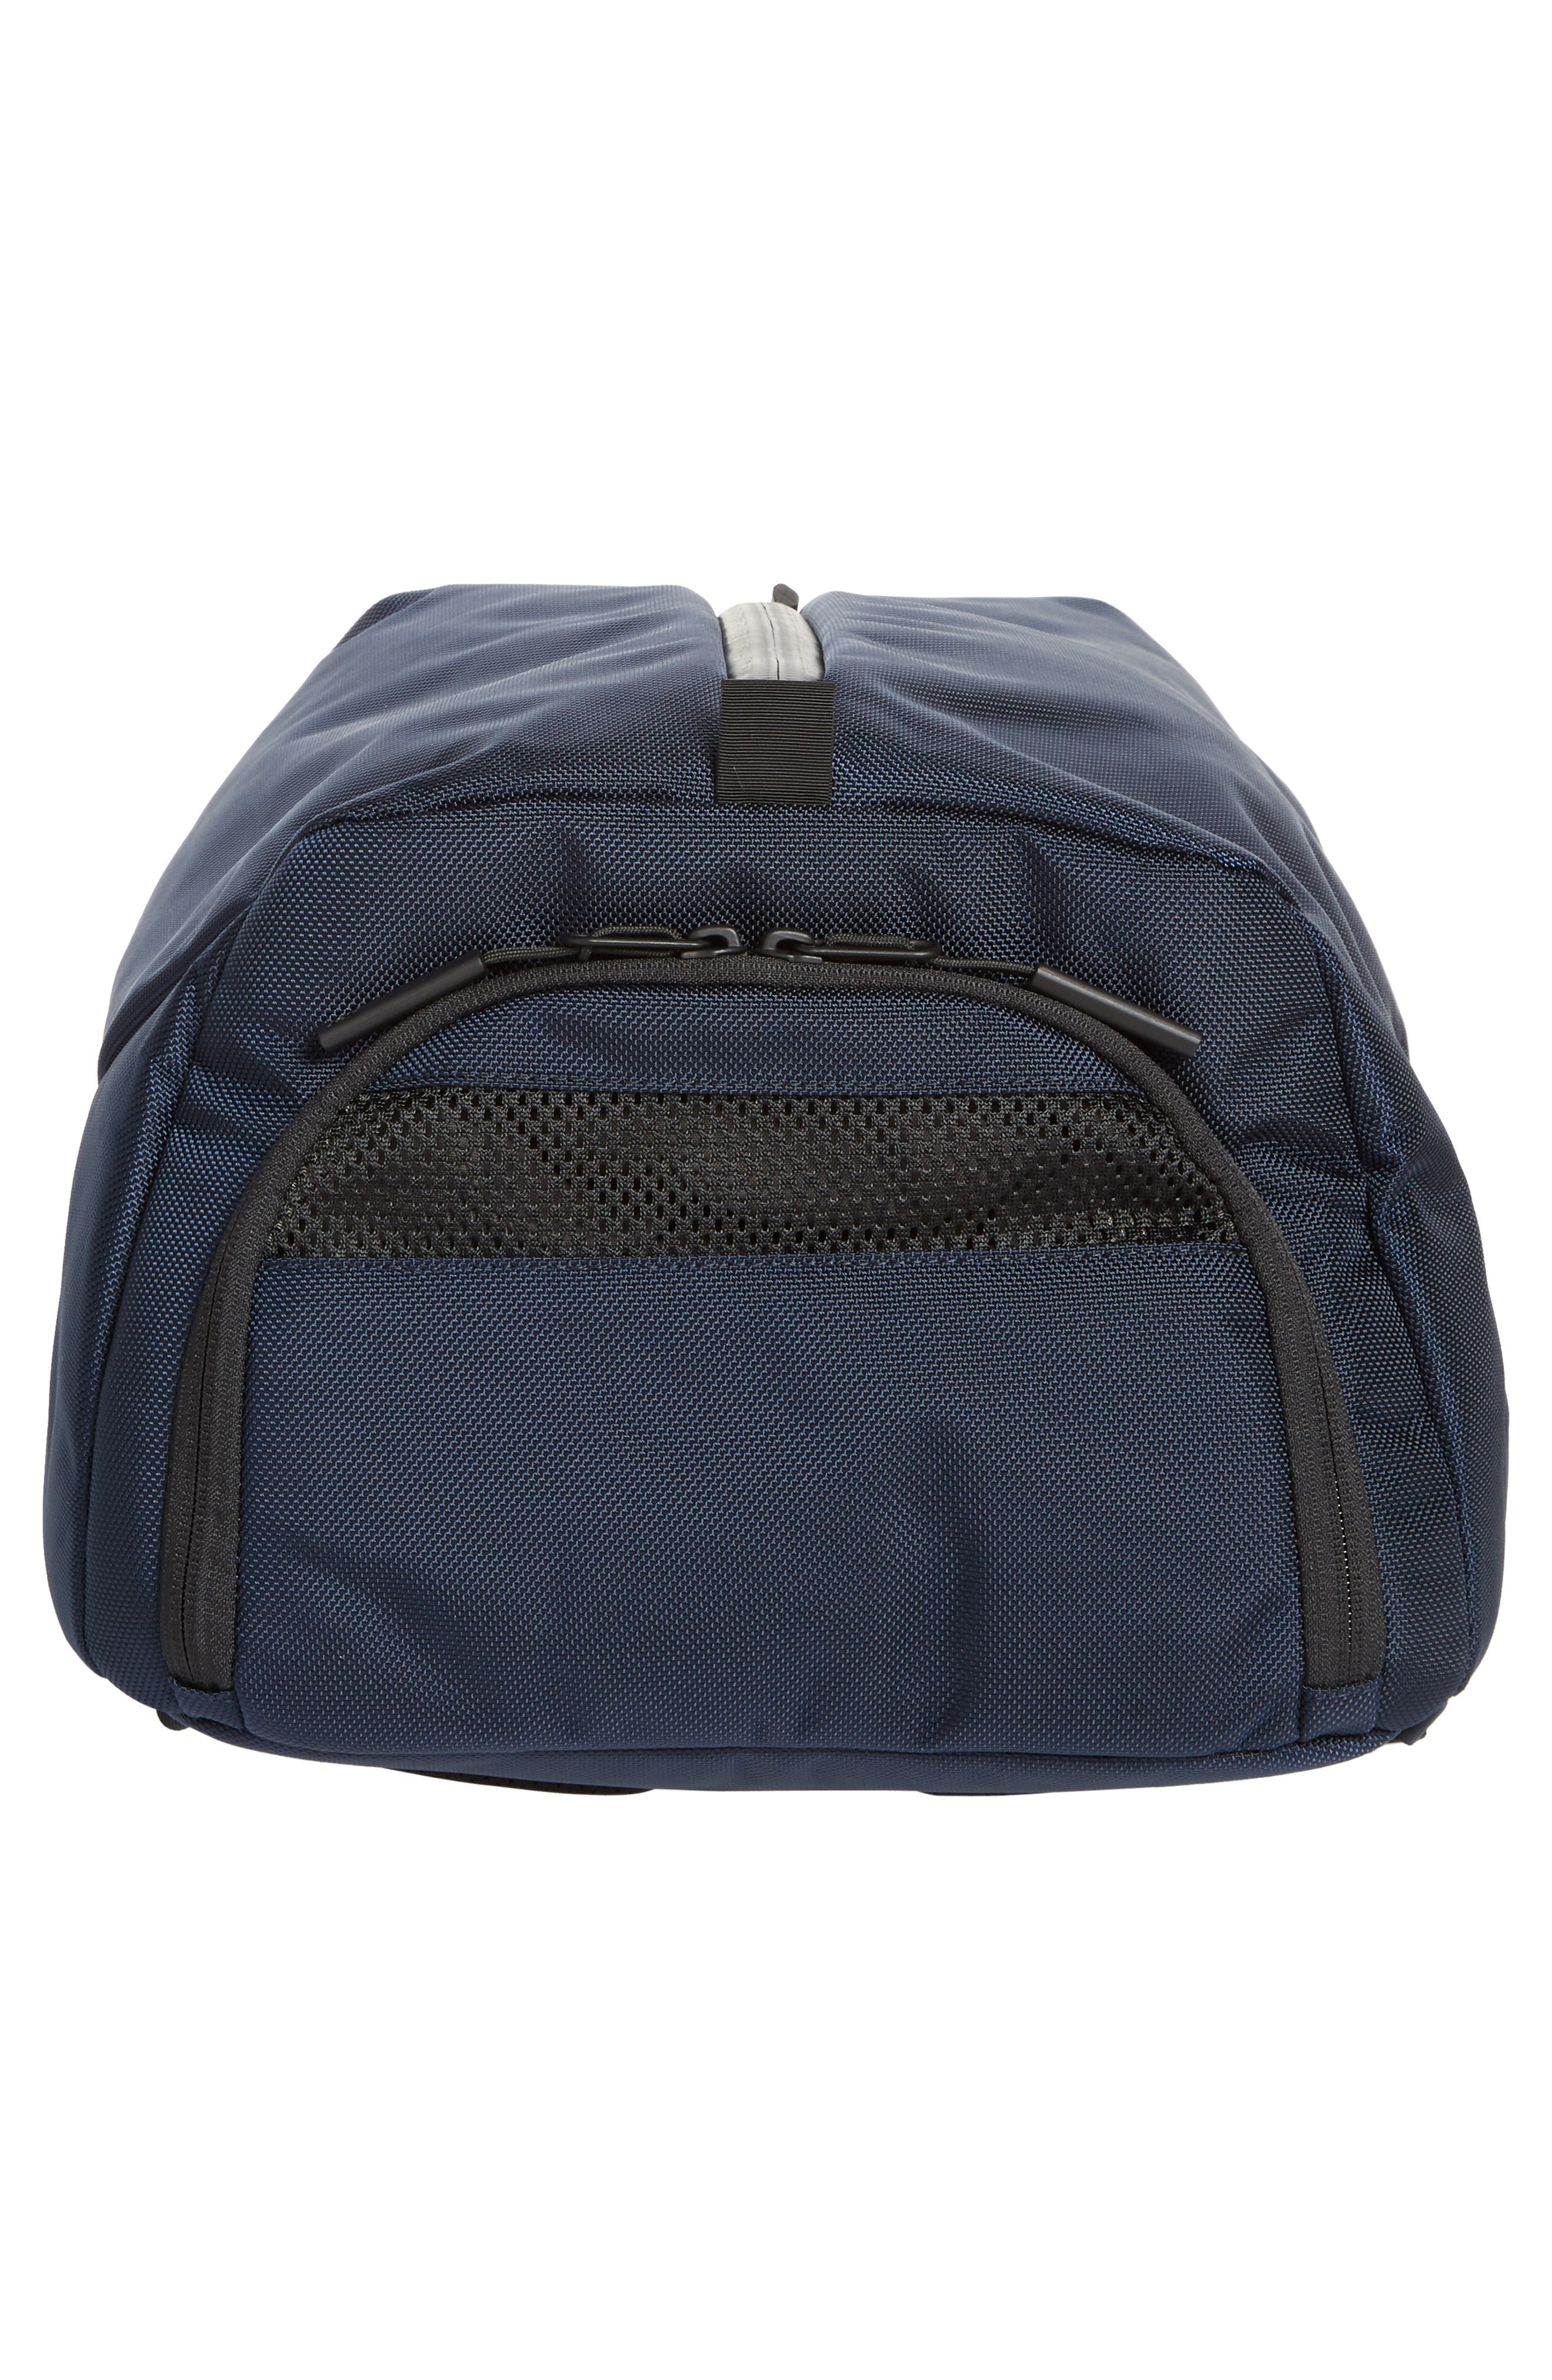 Fit Pack 2 Backpack,                             Alternate thumbnail 6, color,                             NAVY